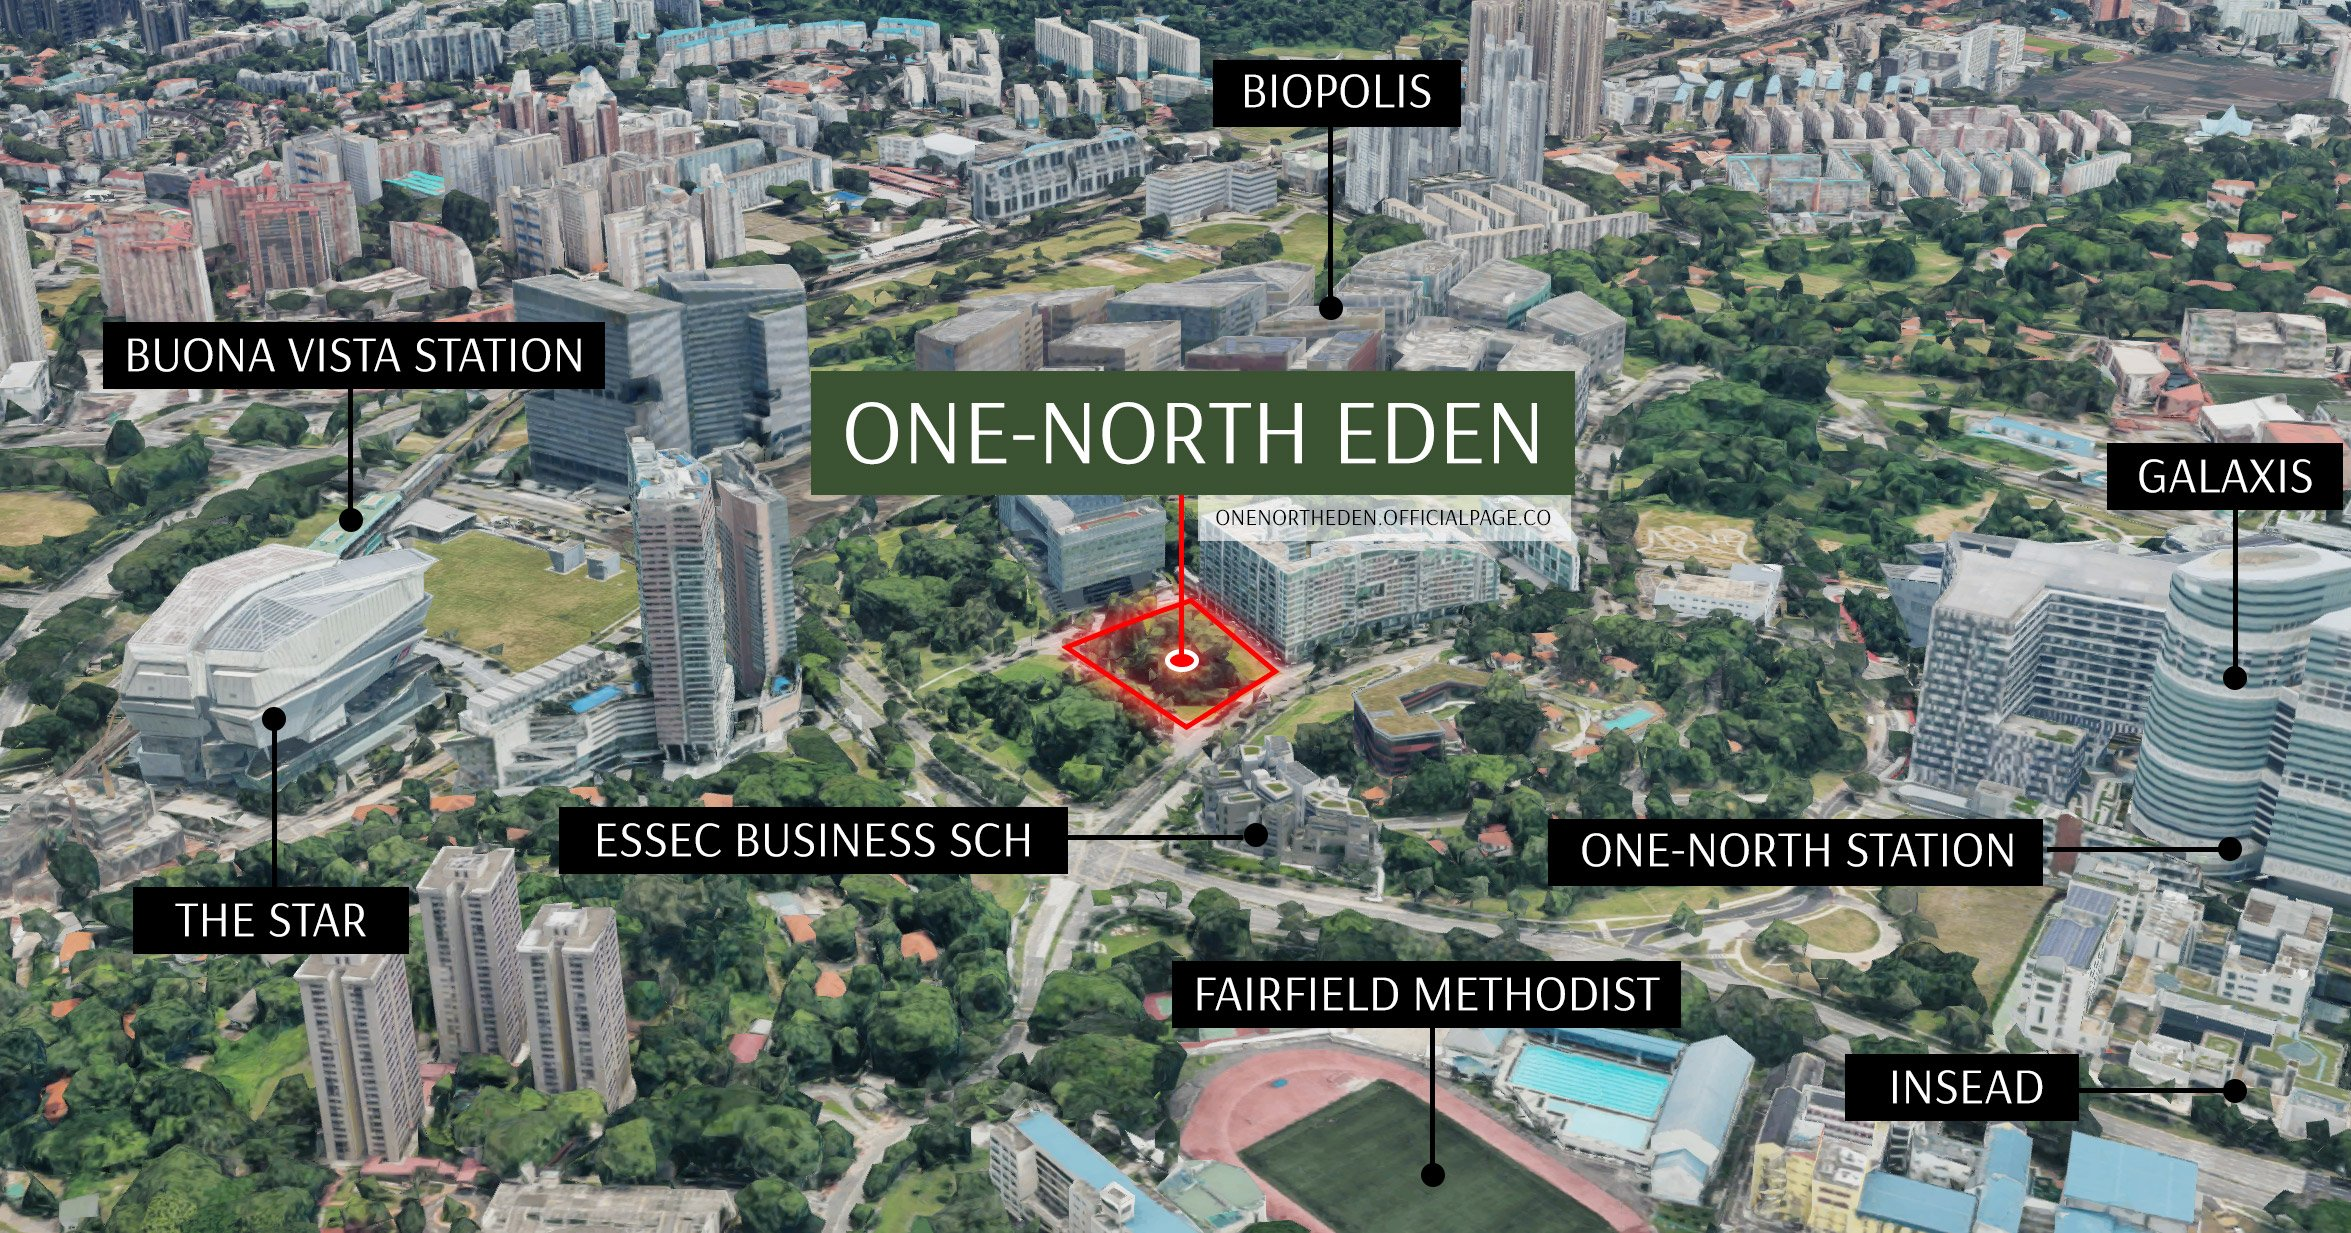 ONE NORTH EDEN